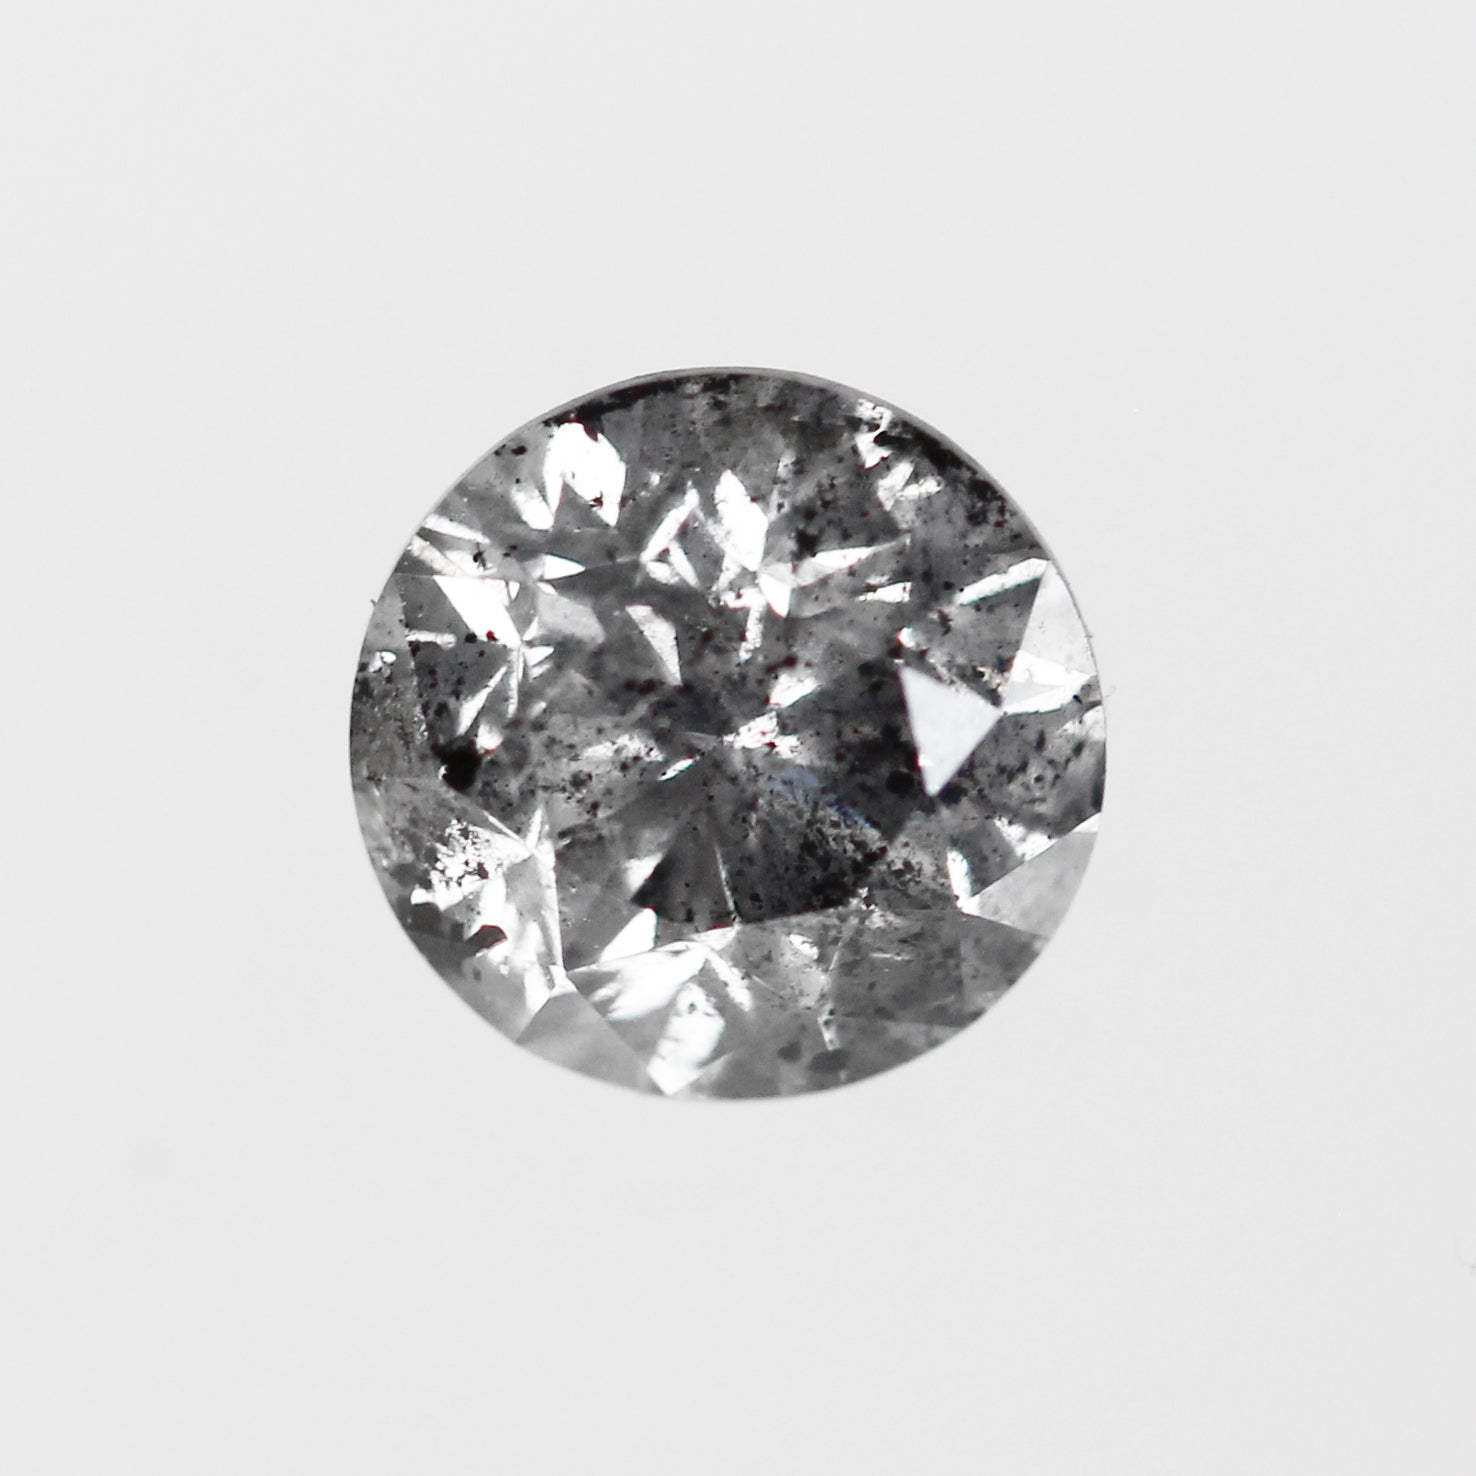 1.01 Carat Round Celestial Diamond for Custom Work - Inventory Code RBCC101 - Celestial Diamonds ® by Midwinter Co.